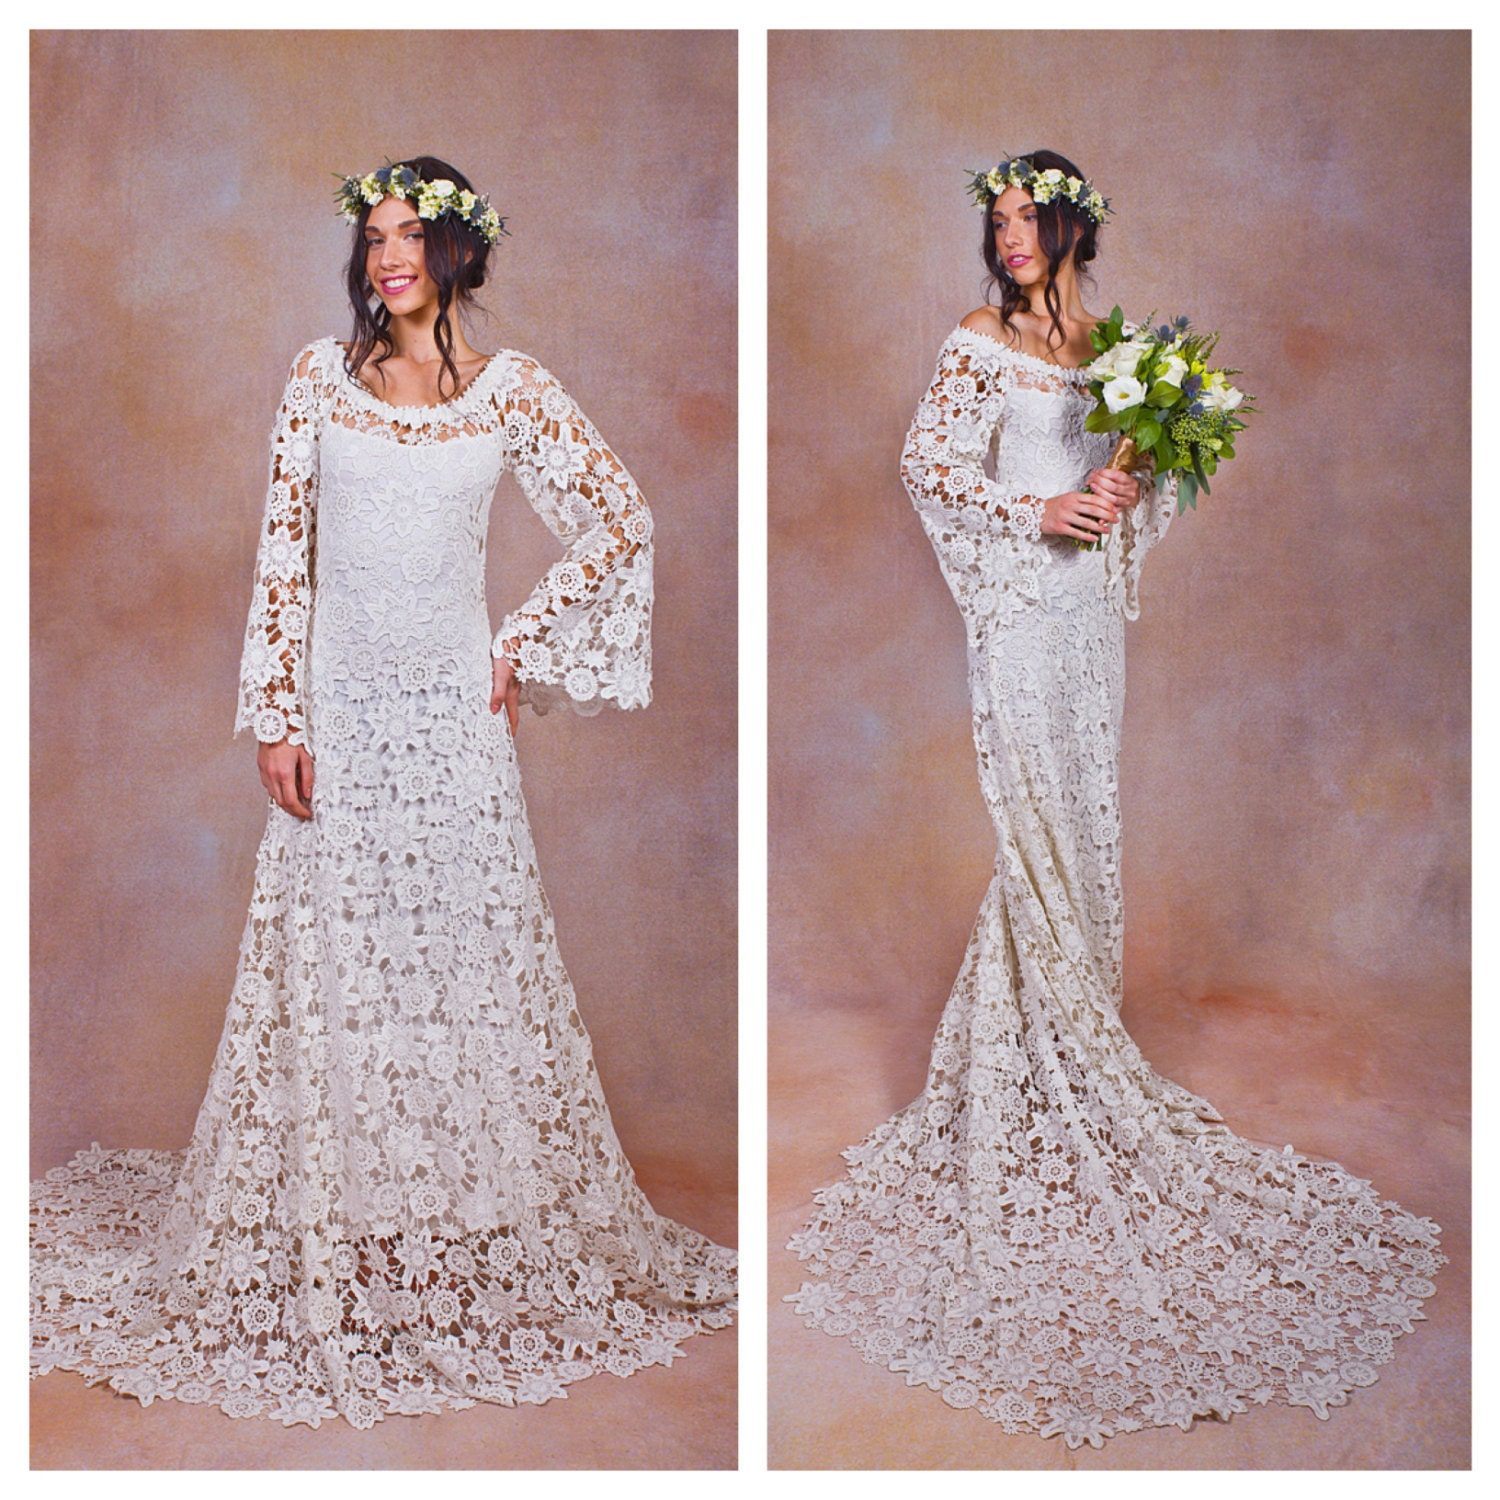 70s Style Lace BOHEMIAN WEDDING DRESS. Ivory Or White Crochet